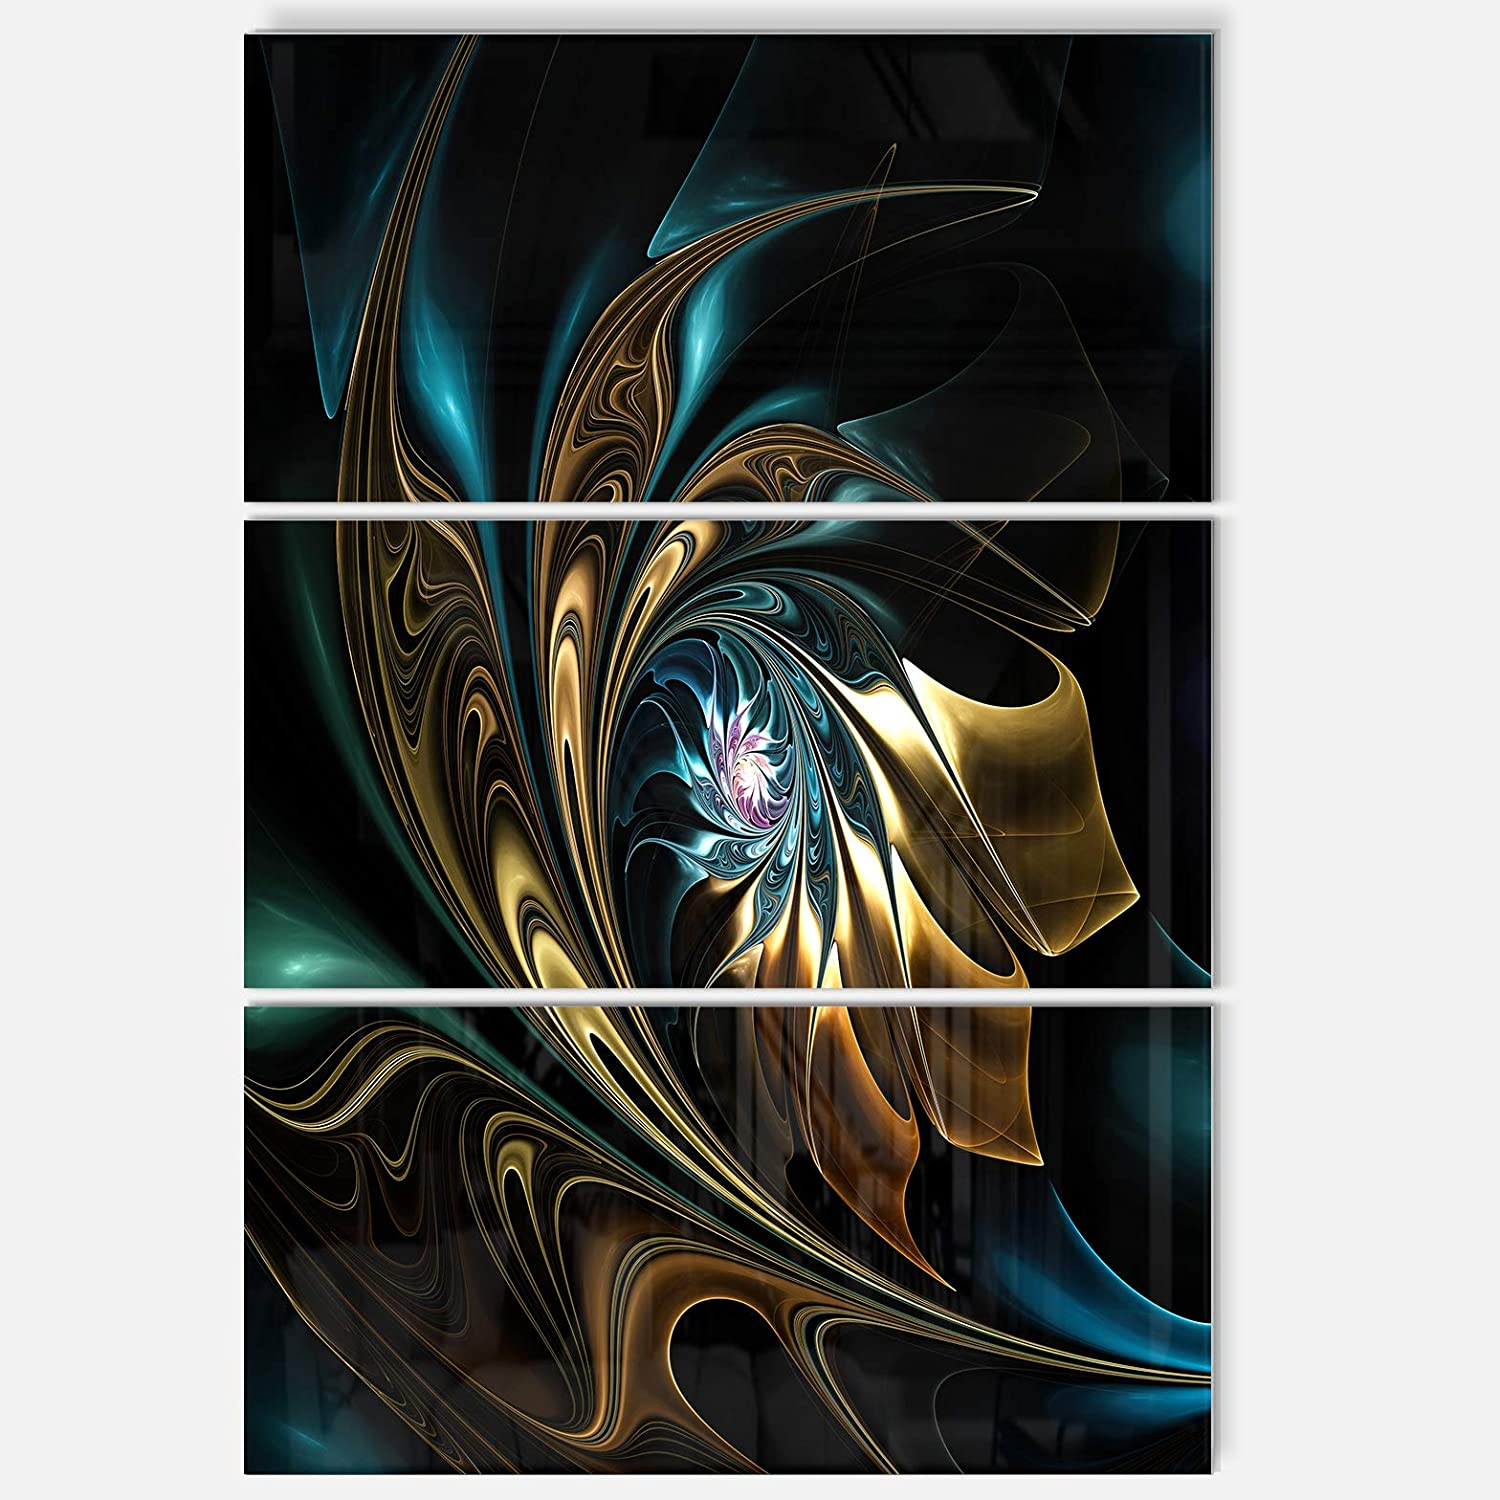 Amazon Com Designart Mt12104 3pv Brown Blue Fractal Flower In Black Oversized Abstract Metal Wall Art 3 Piece 28 H X 36 W X 1 D 3p Wall Art